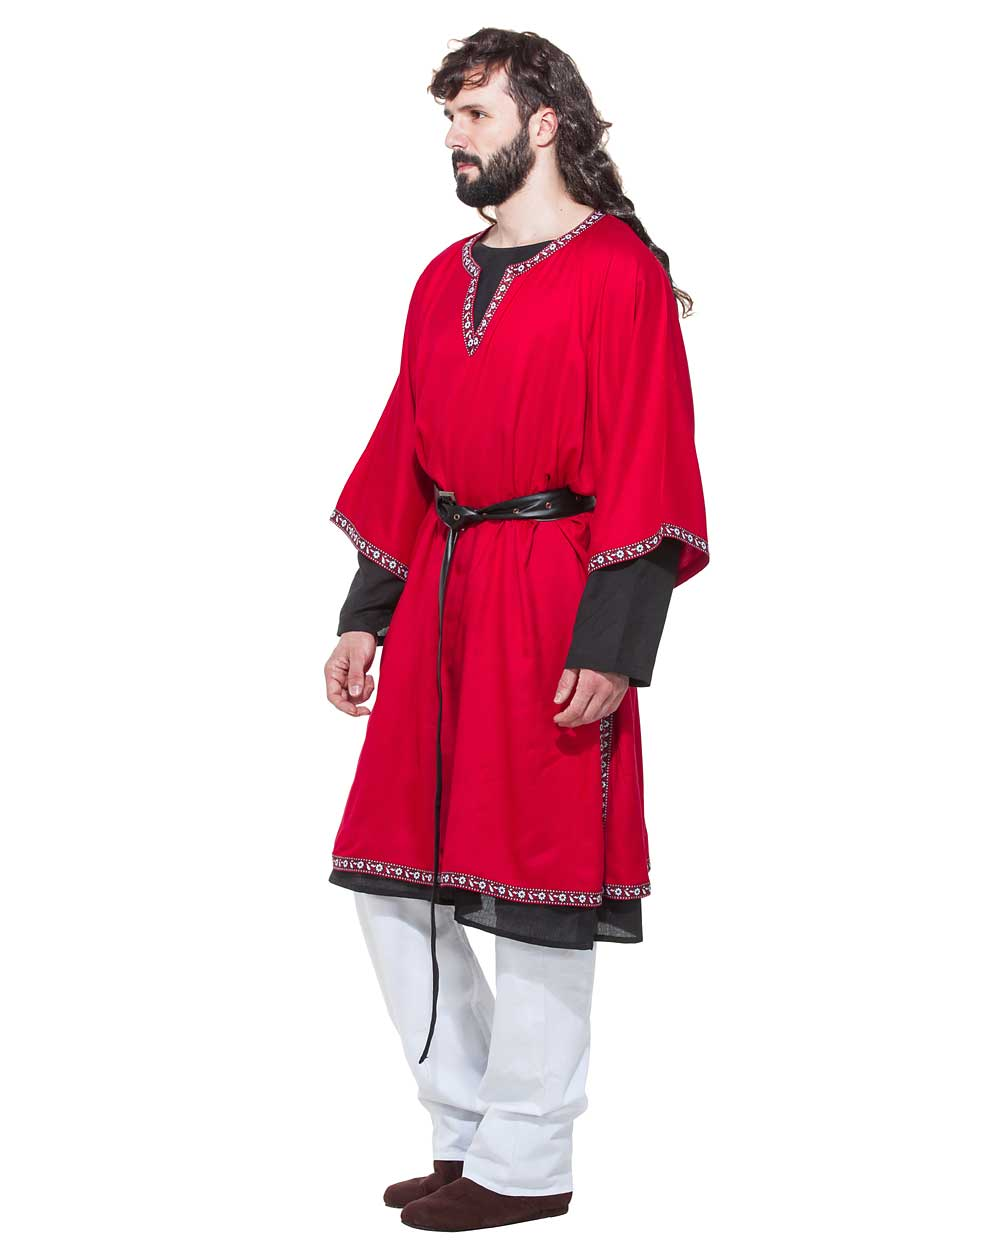 Snorre Viking Tunic